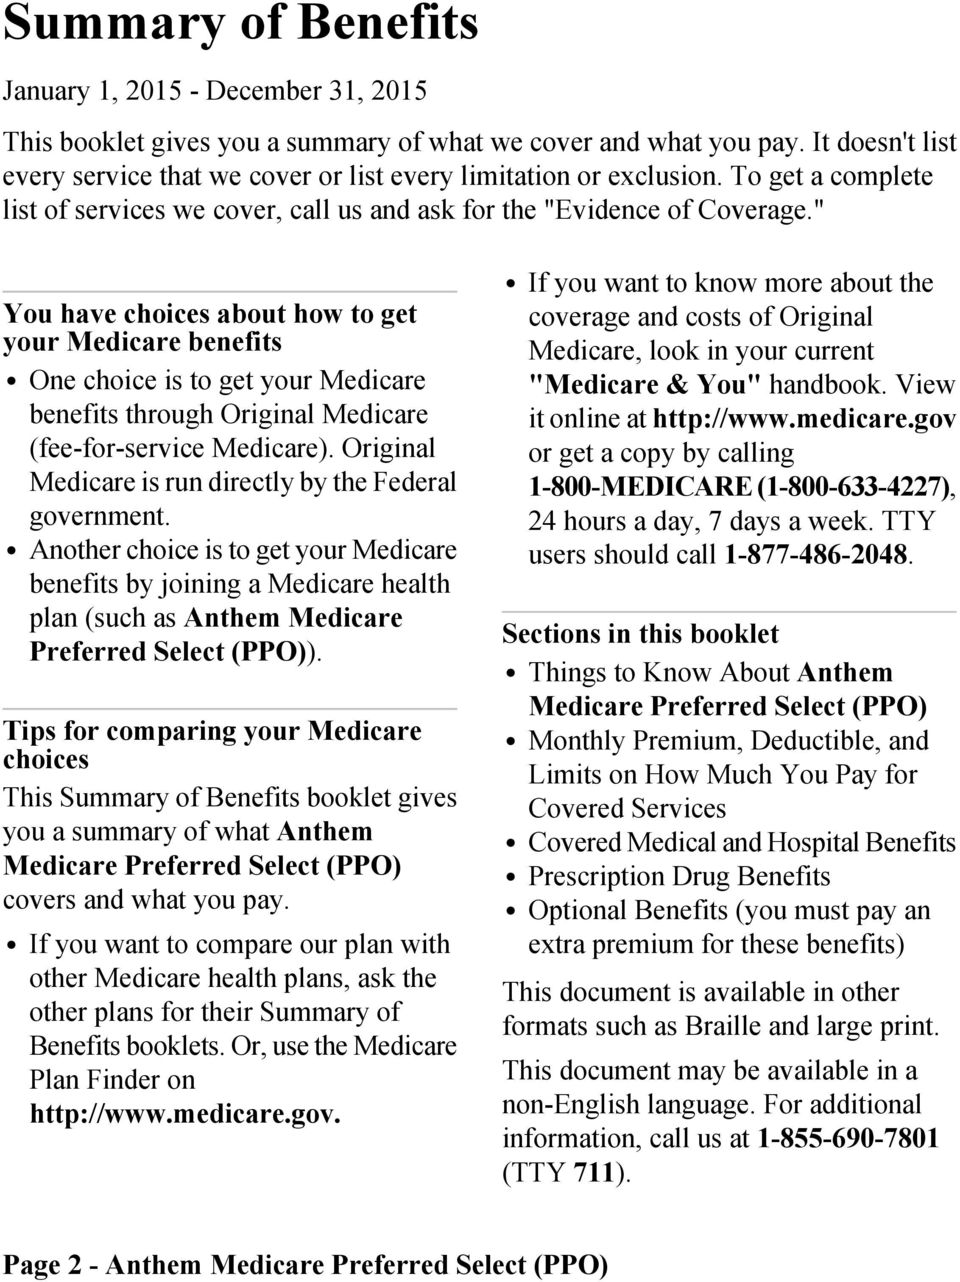 """ You have choices about how to get your Medicare benefits One choice is to get your Medicare benefits through Original Medicare (fee-for-service Medicare)."